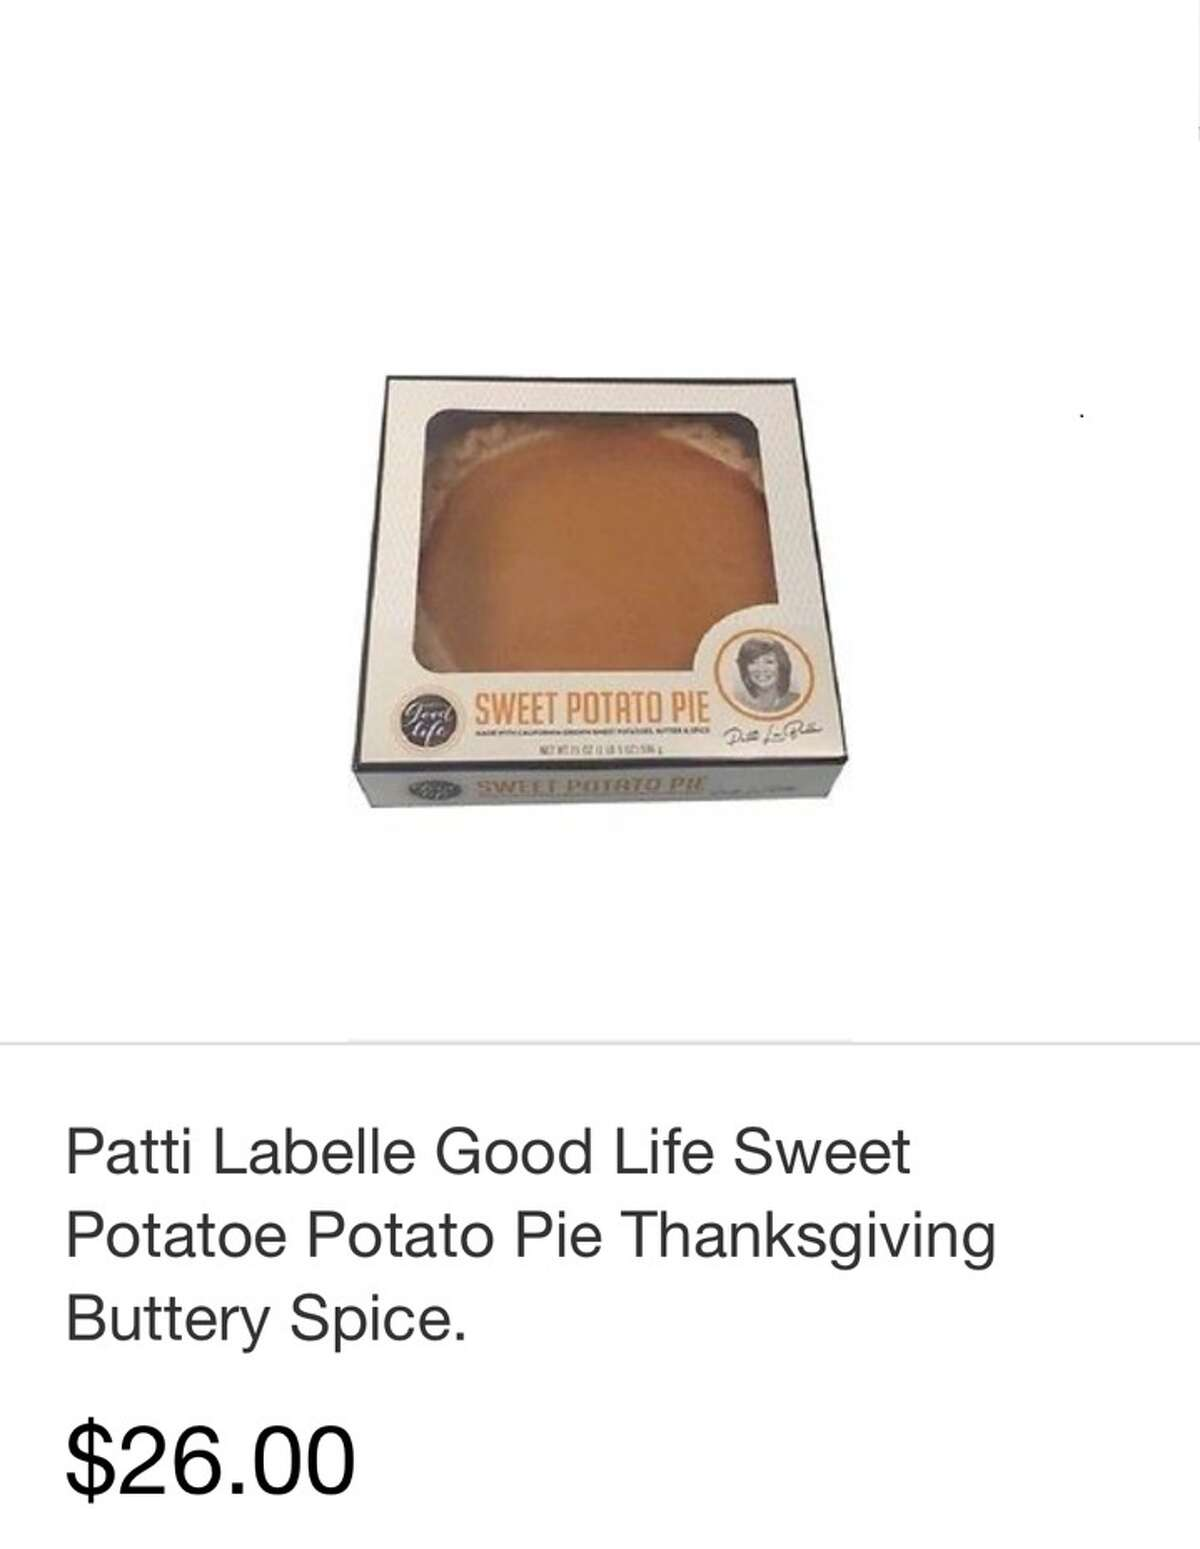 Patti LaBelle's pies are going for high prices on eBay.